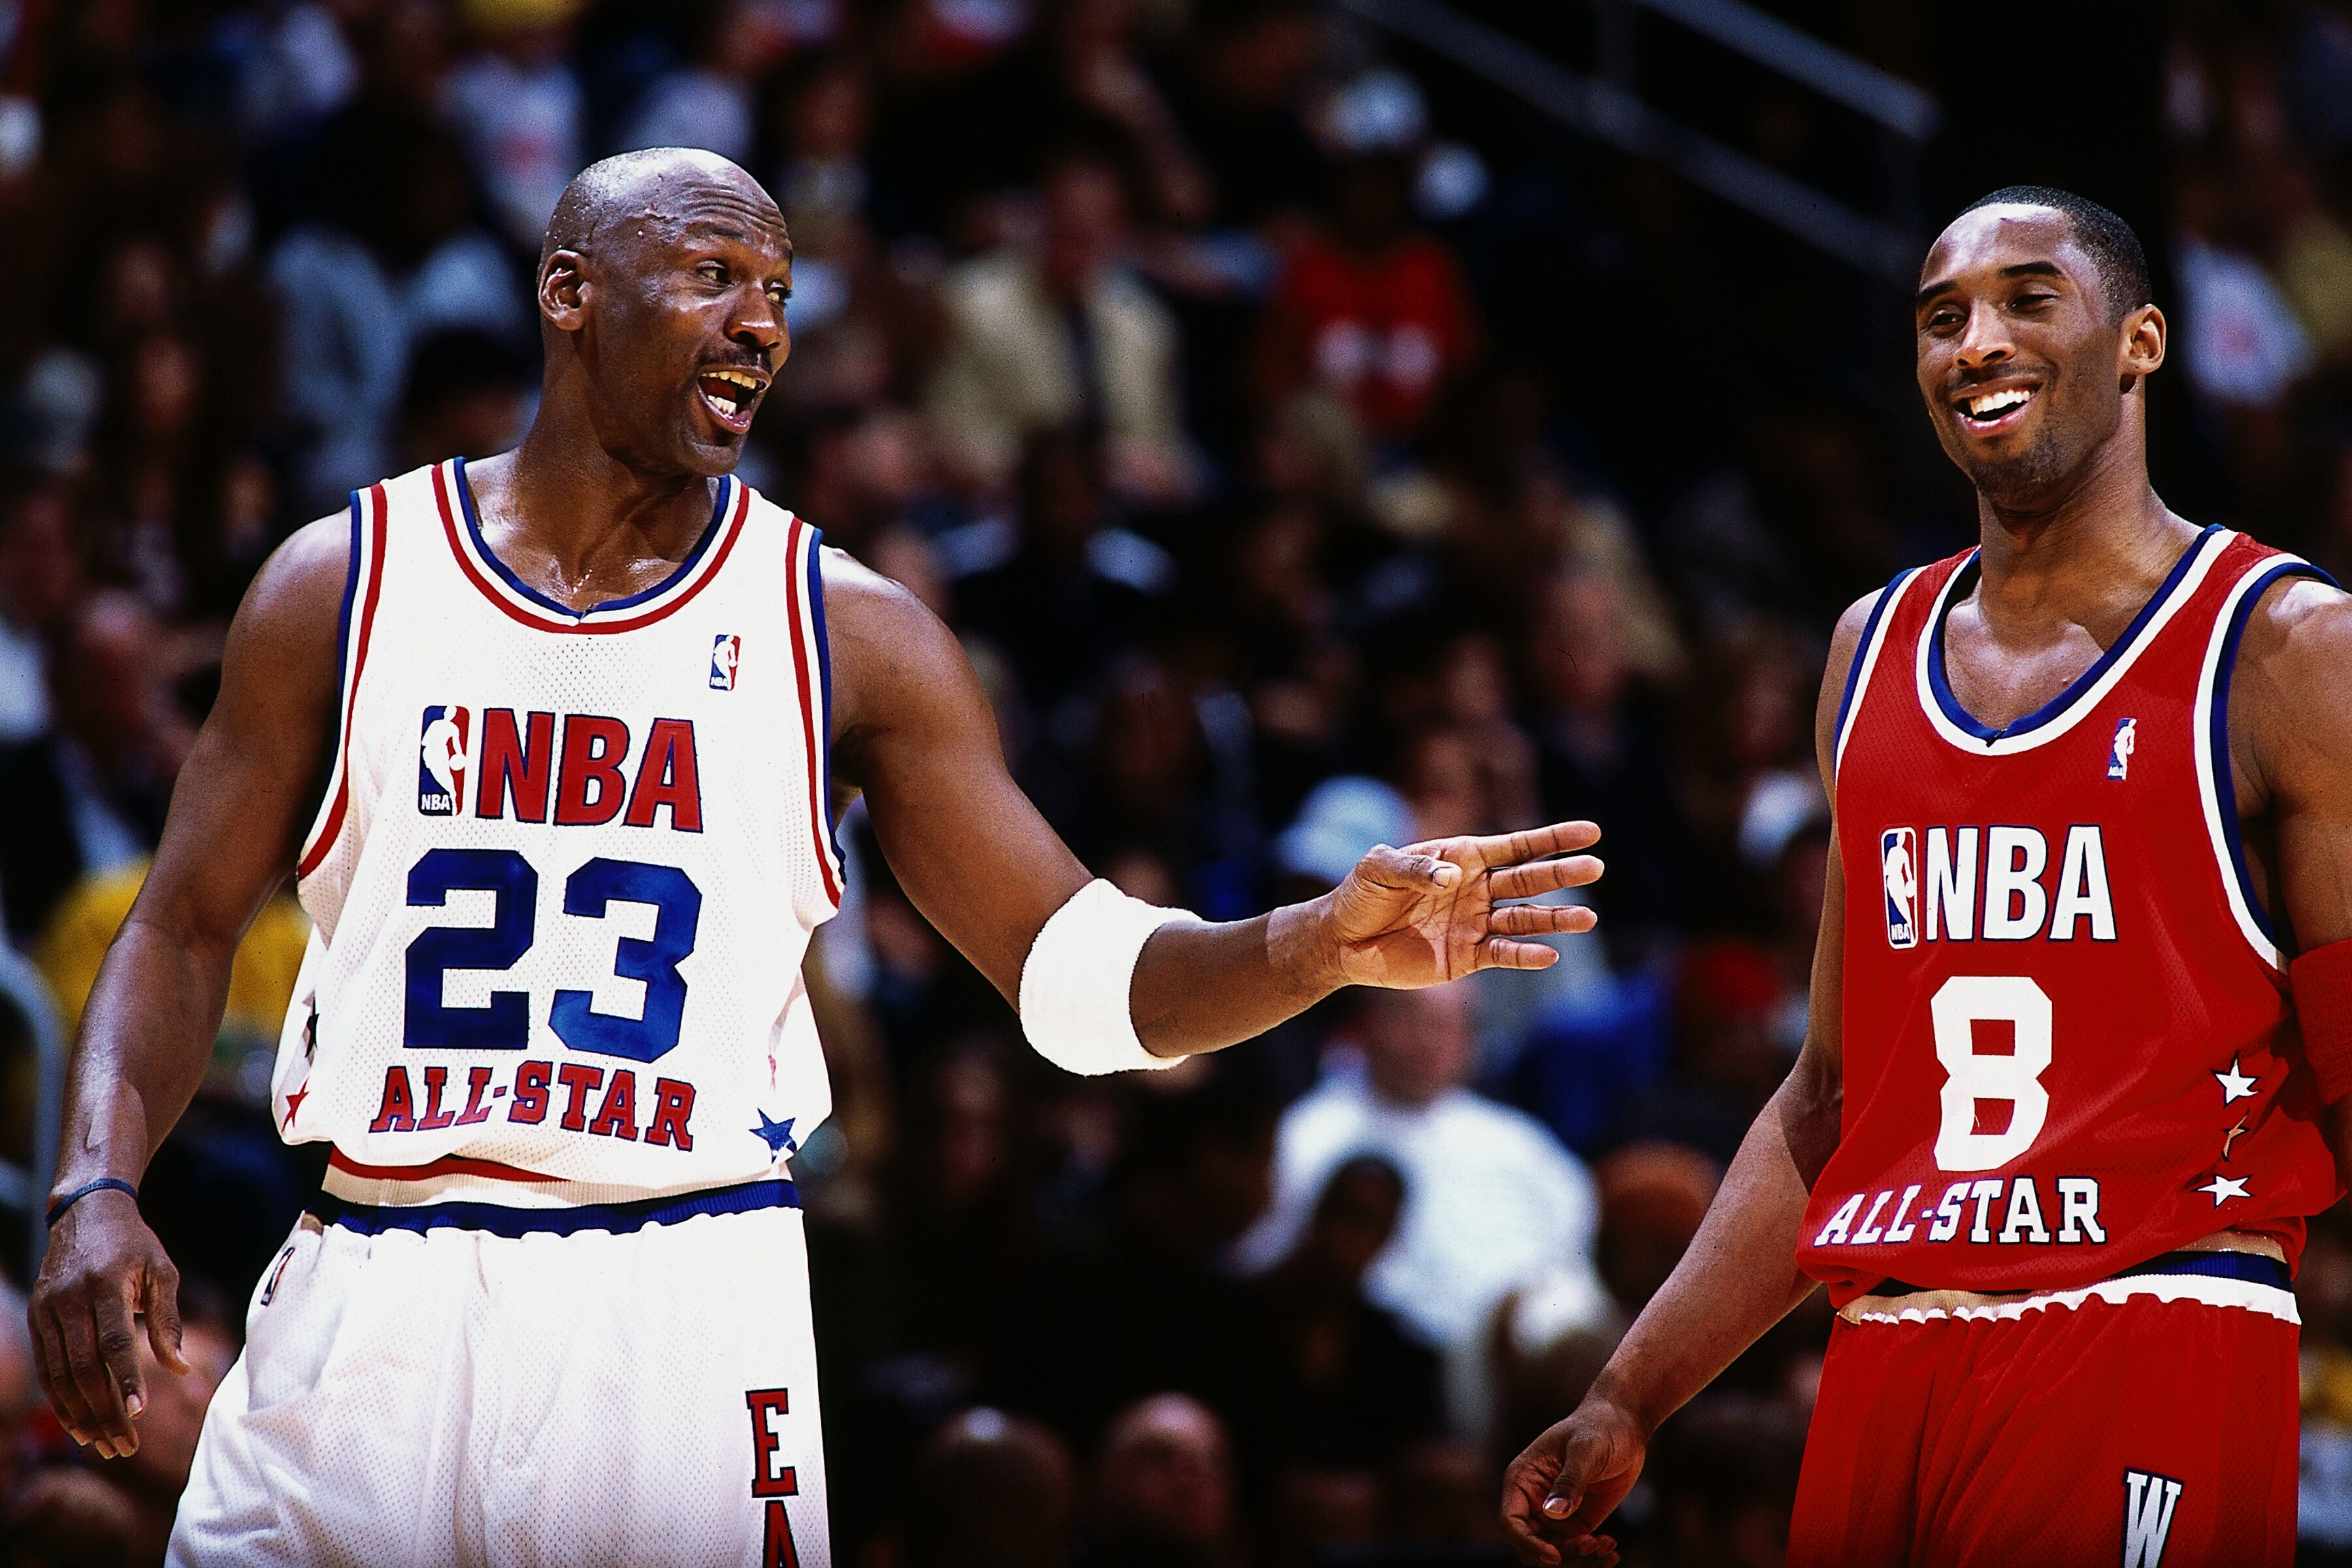 Two Generations Of Basketball Mj Kobe Mj Kobe Star